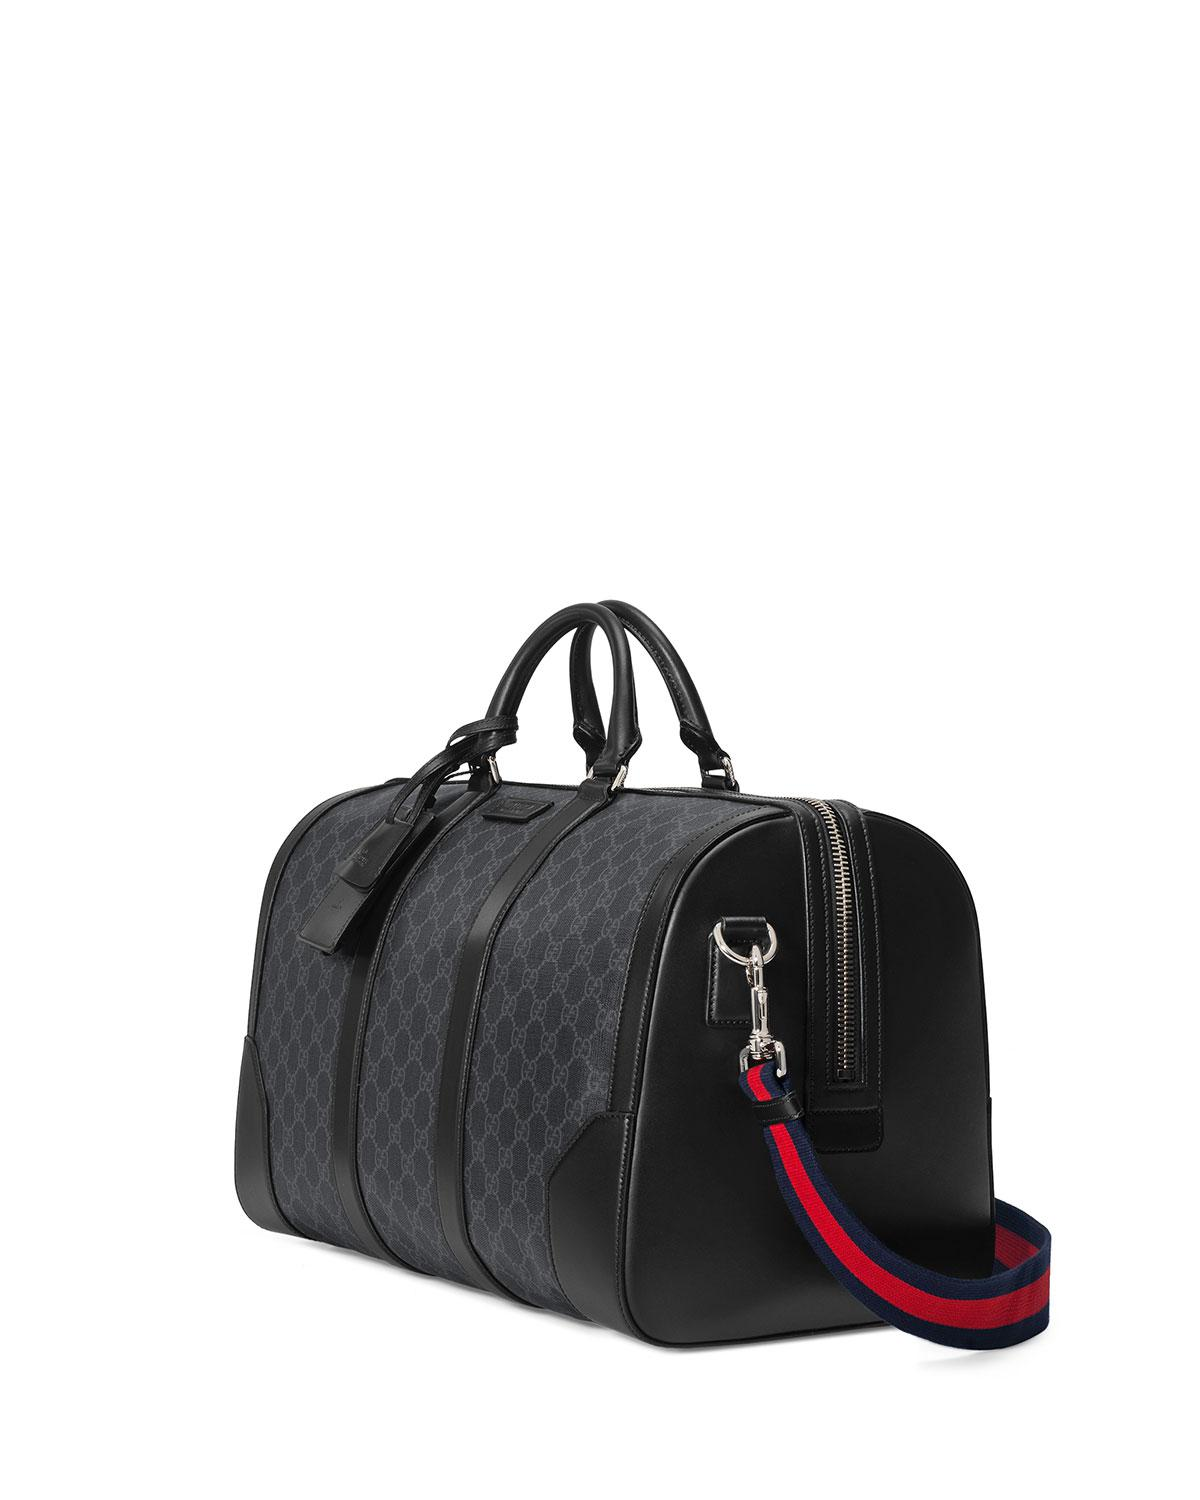 3e23c4951f84 Gucci Soft GG Supreme Carry-on Duffle in Black for Men - Save 16% - Lyst